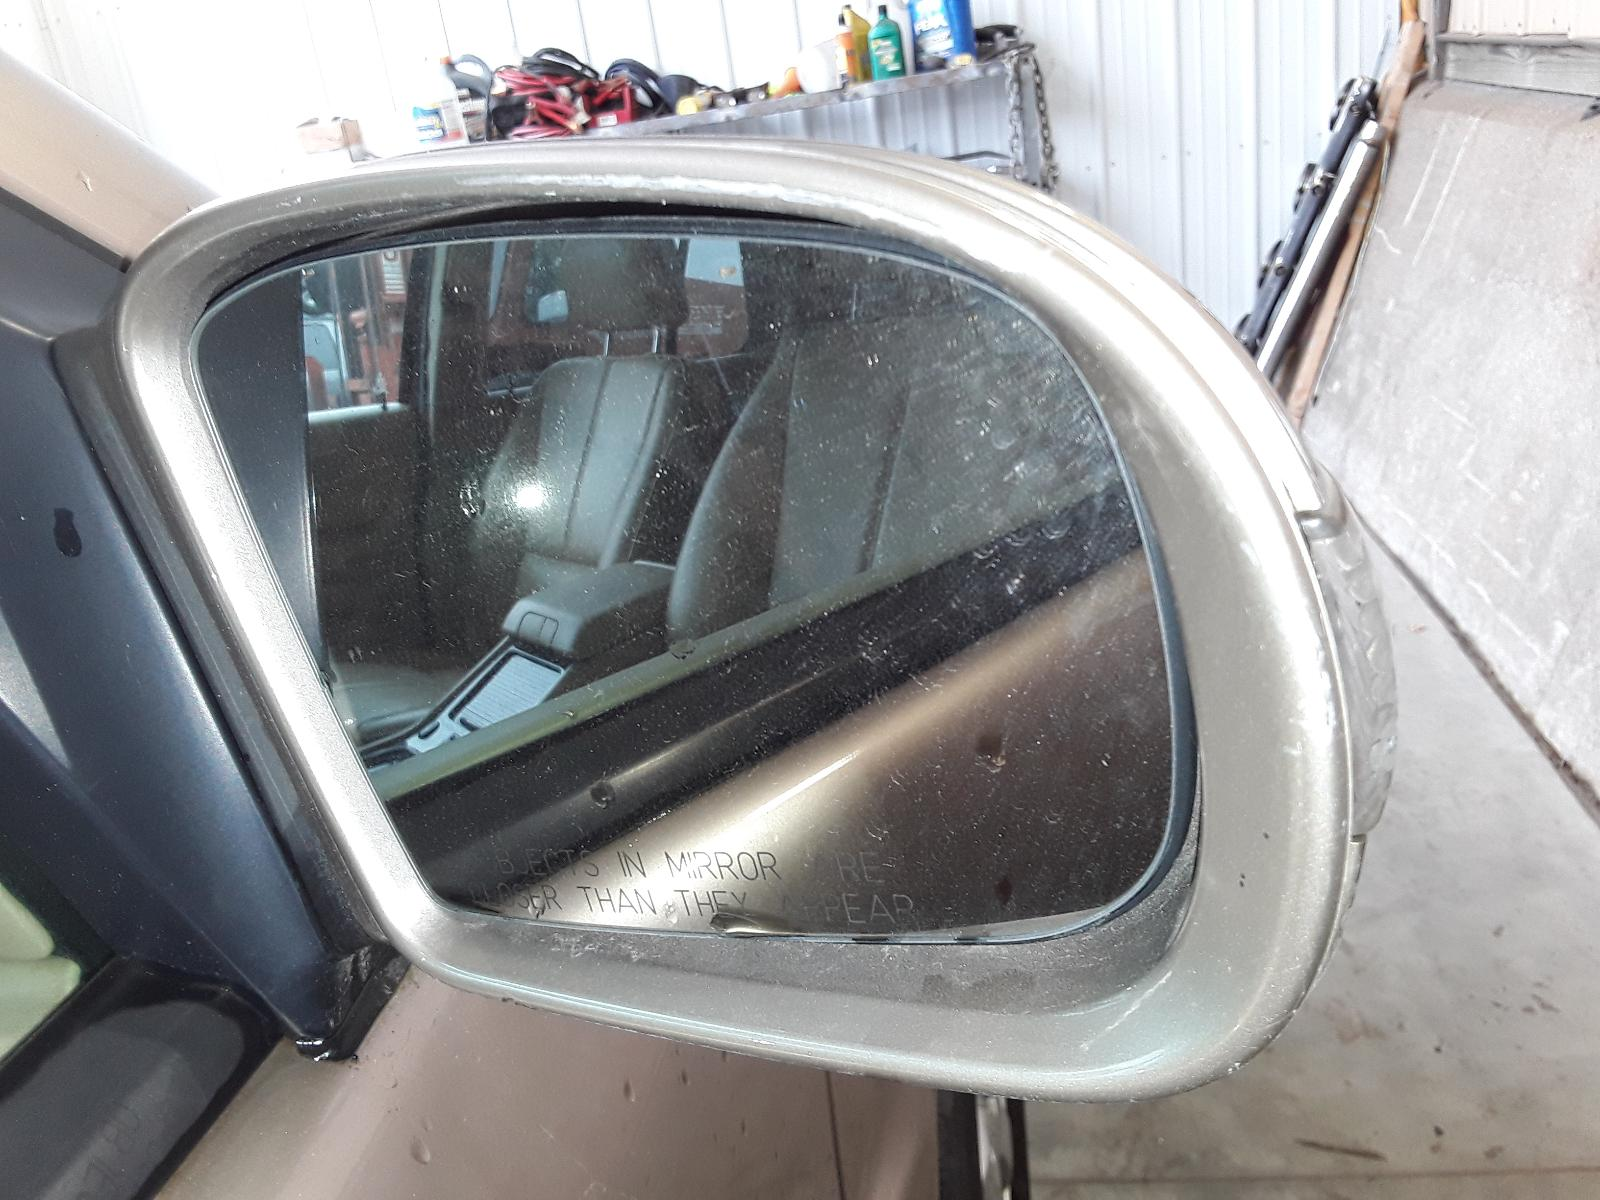 Mirror Inc Topeka Ks Mercedes Benz Ml Class Side View Mirror Used Auto Parts